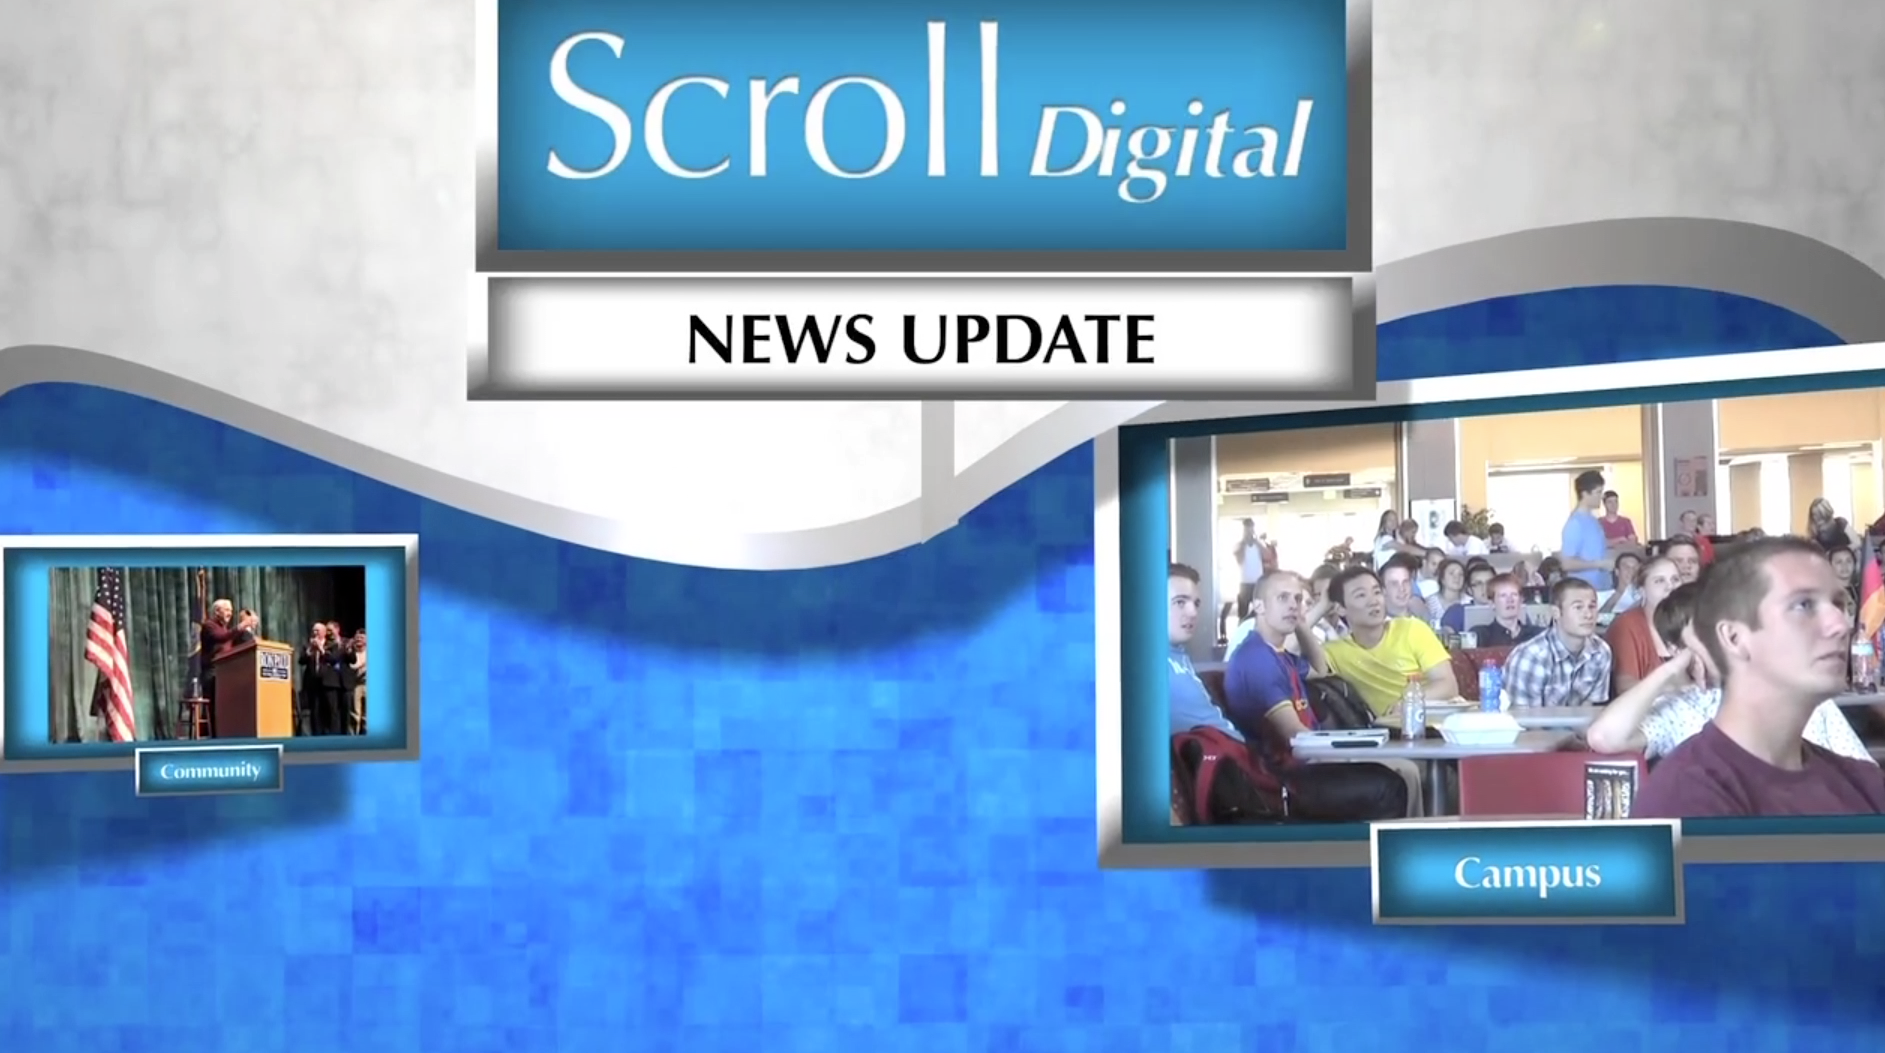 Behind The Scenes Look At Creating The Scroll Digital Newscast